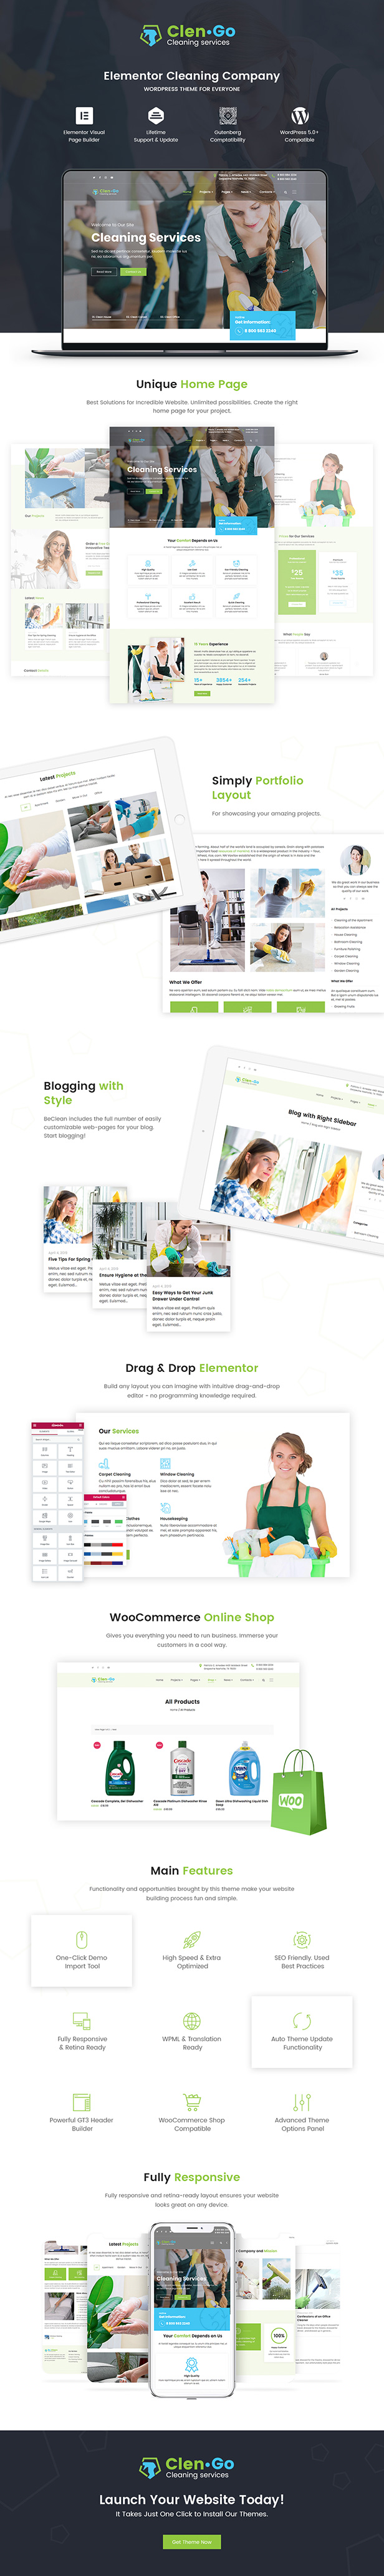 Elementor Cleaning Services WordPress Theme - Clengo